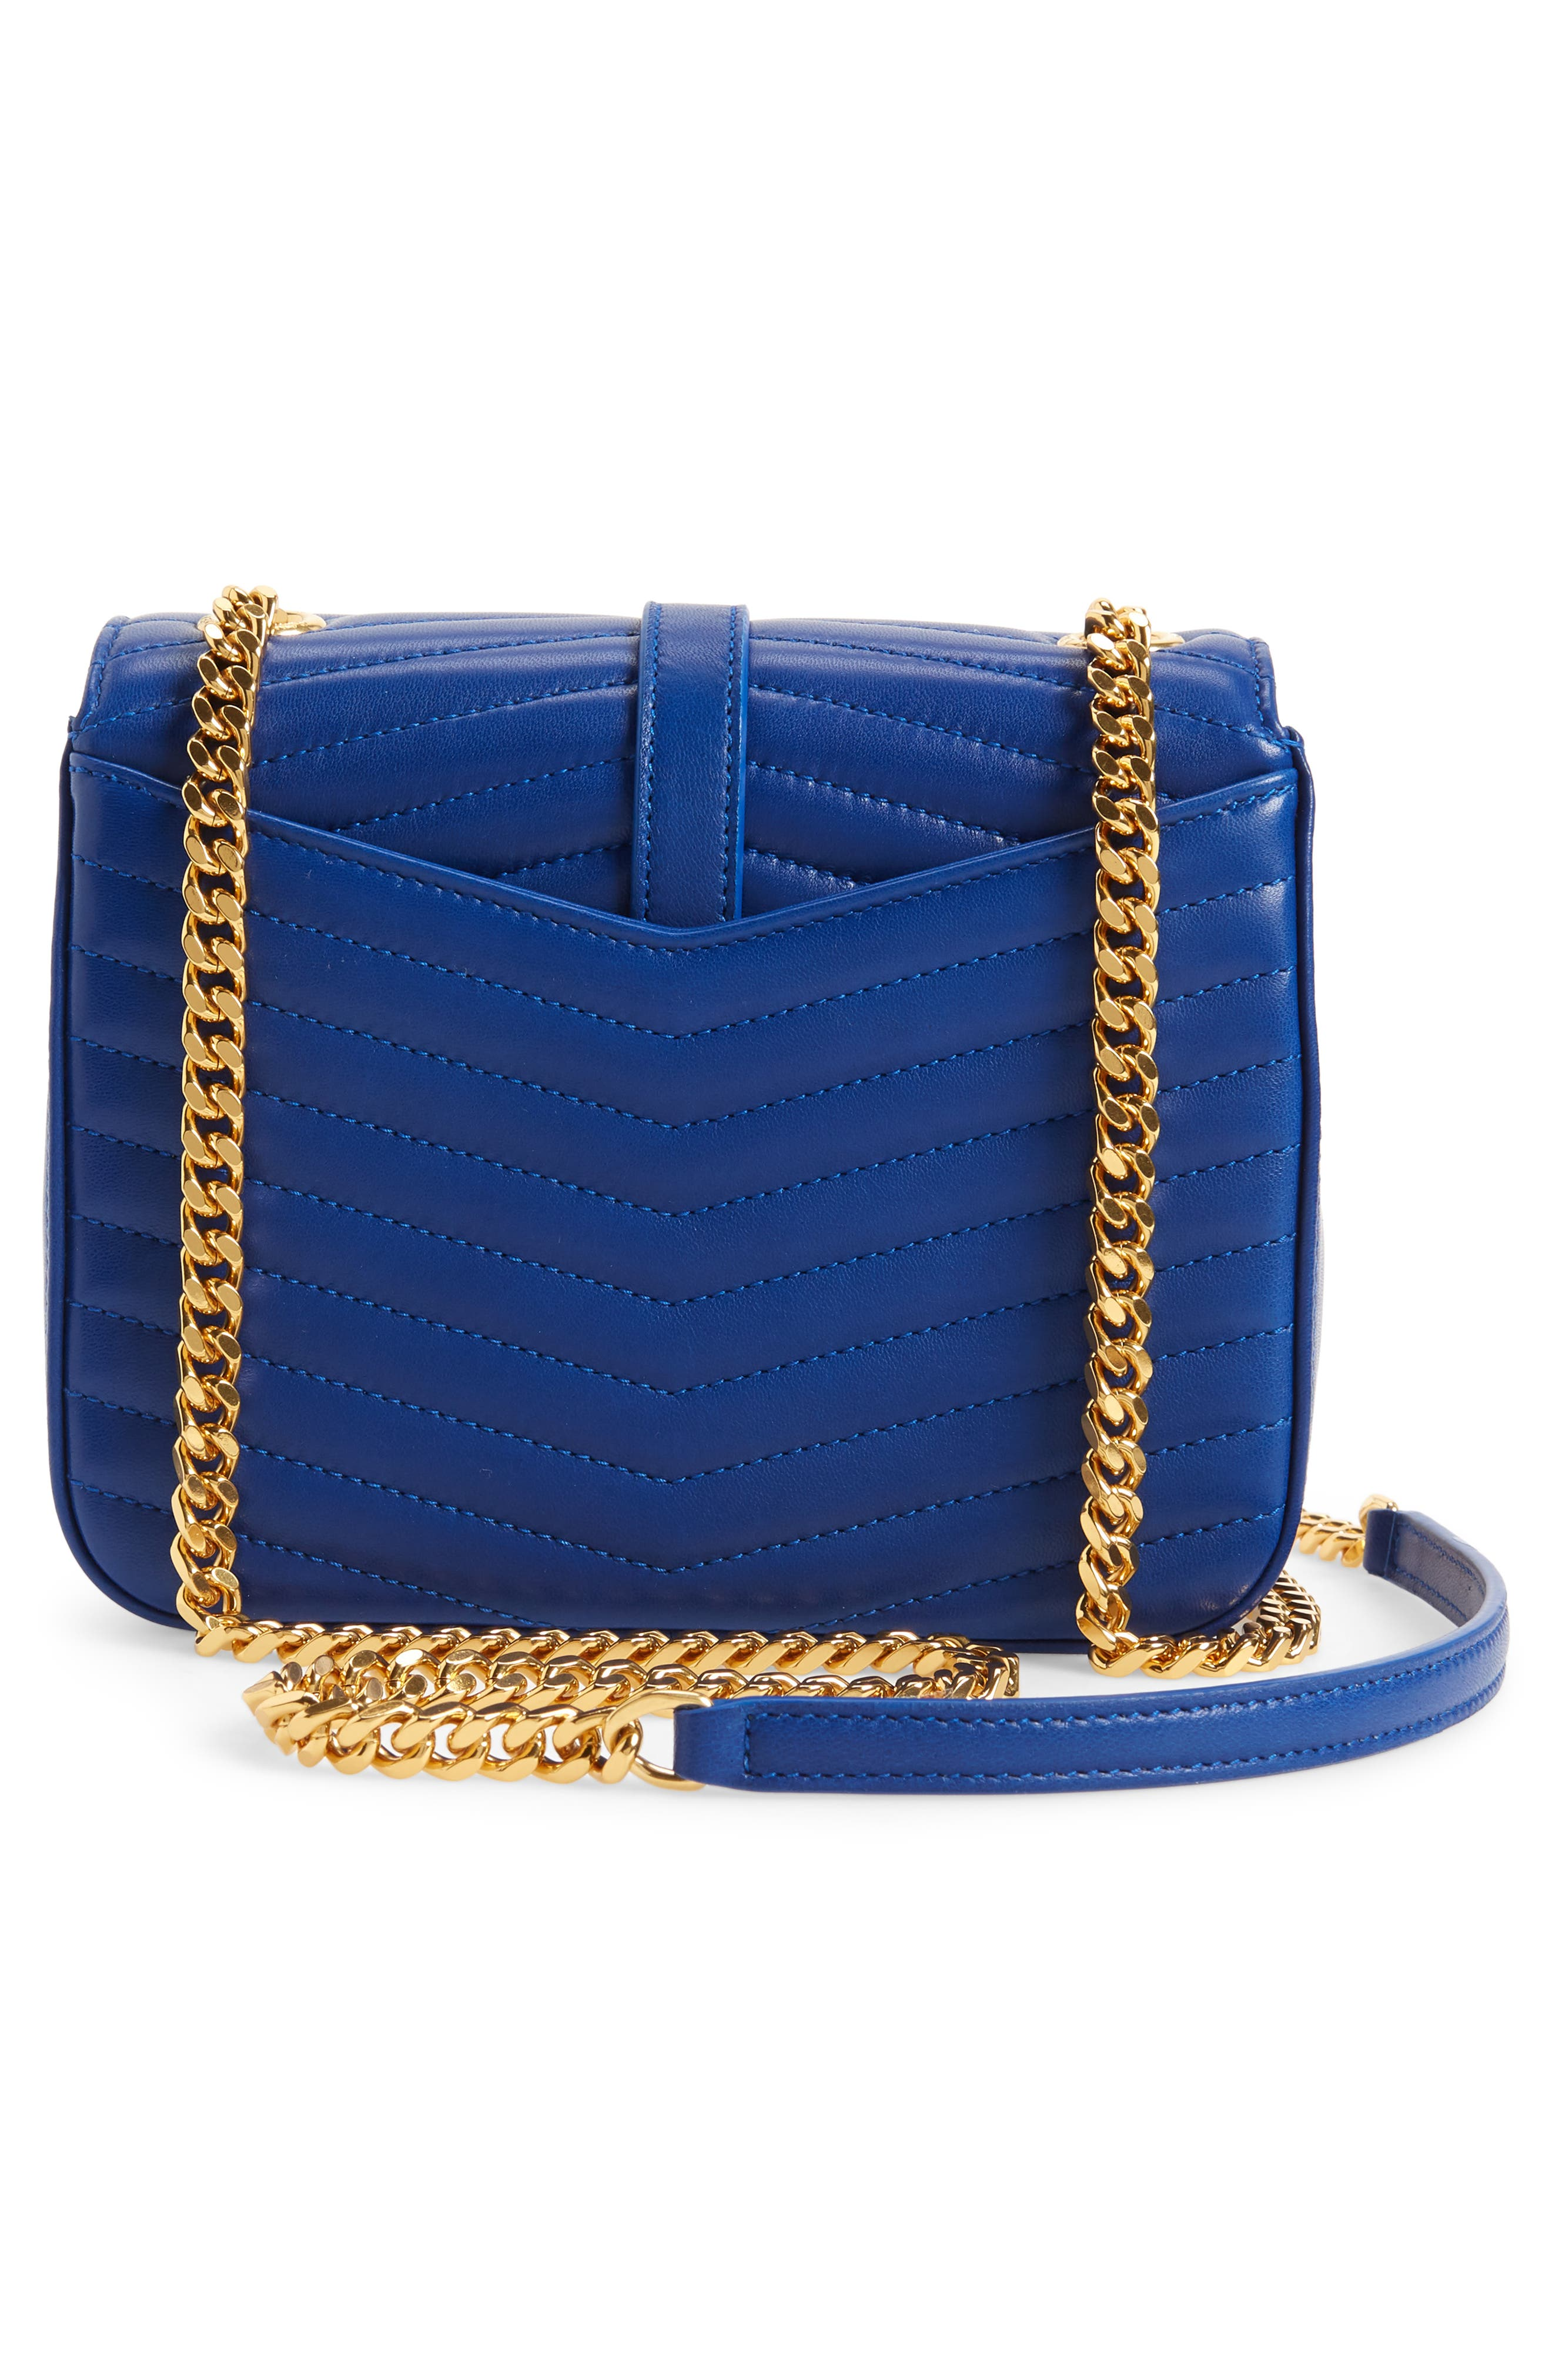 Montaigne Quilted Lambskin Crossbody Bag,                             Alternate thumbnail 3, color,                             BRIGHT BLUE